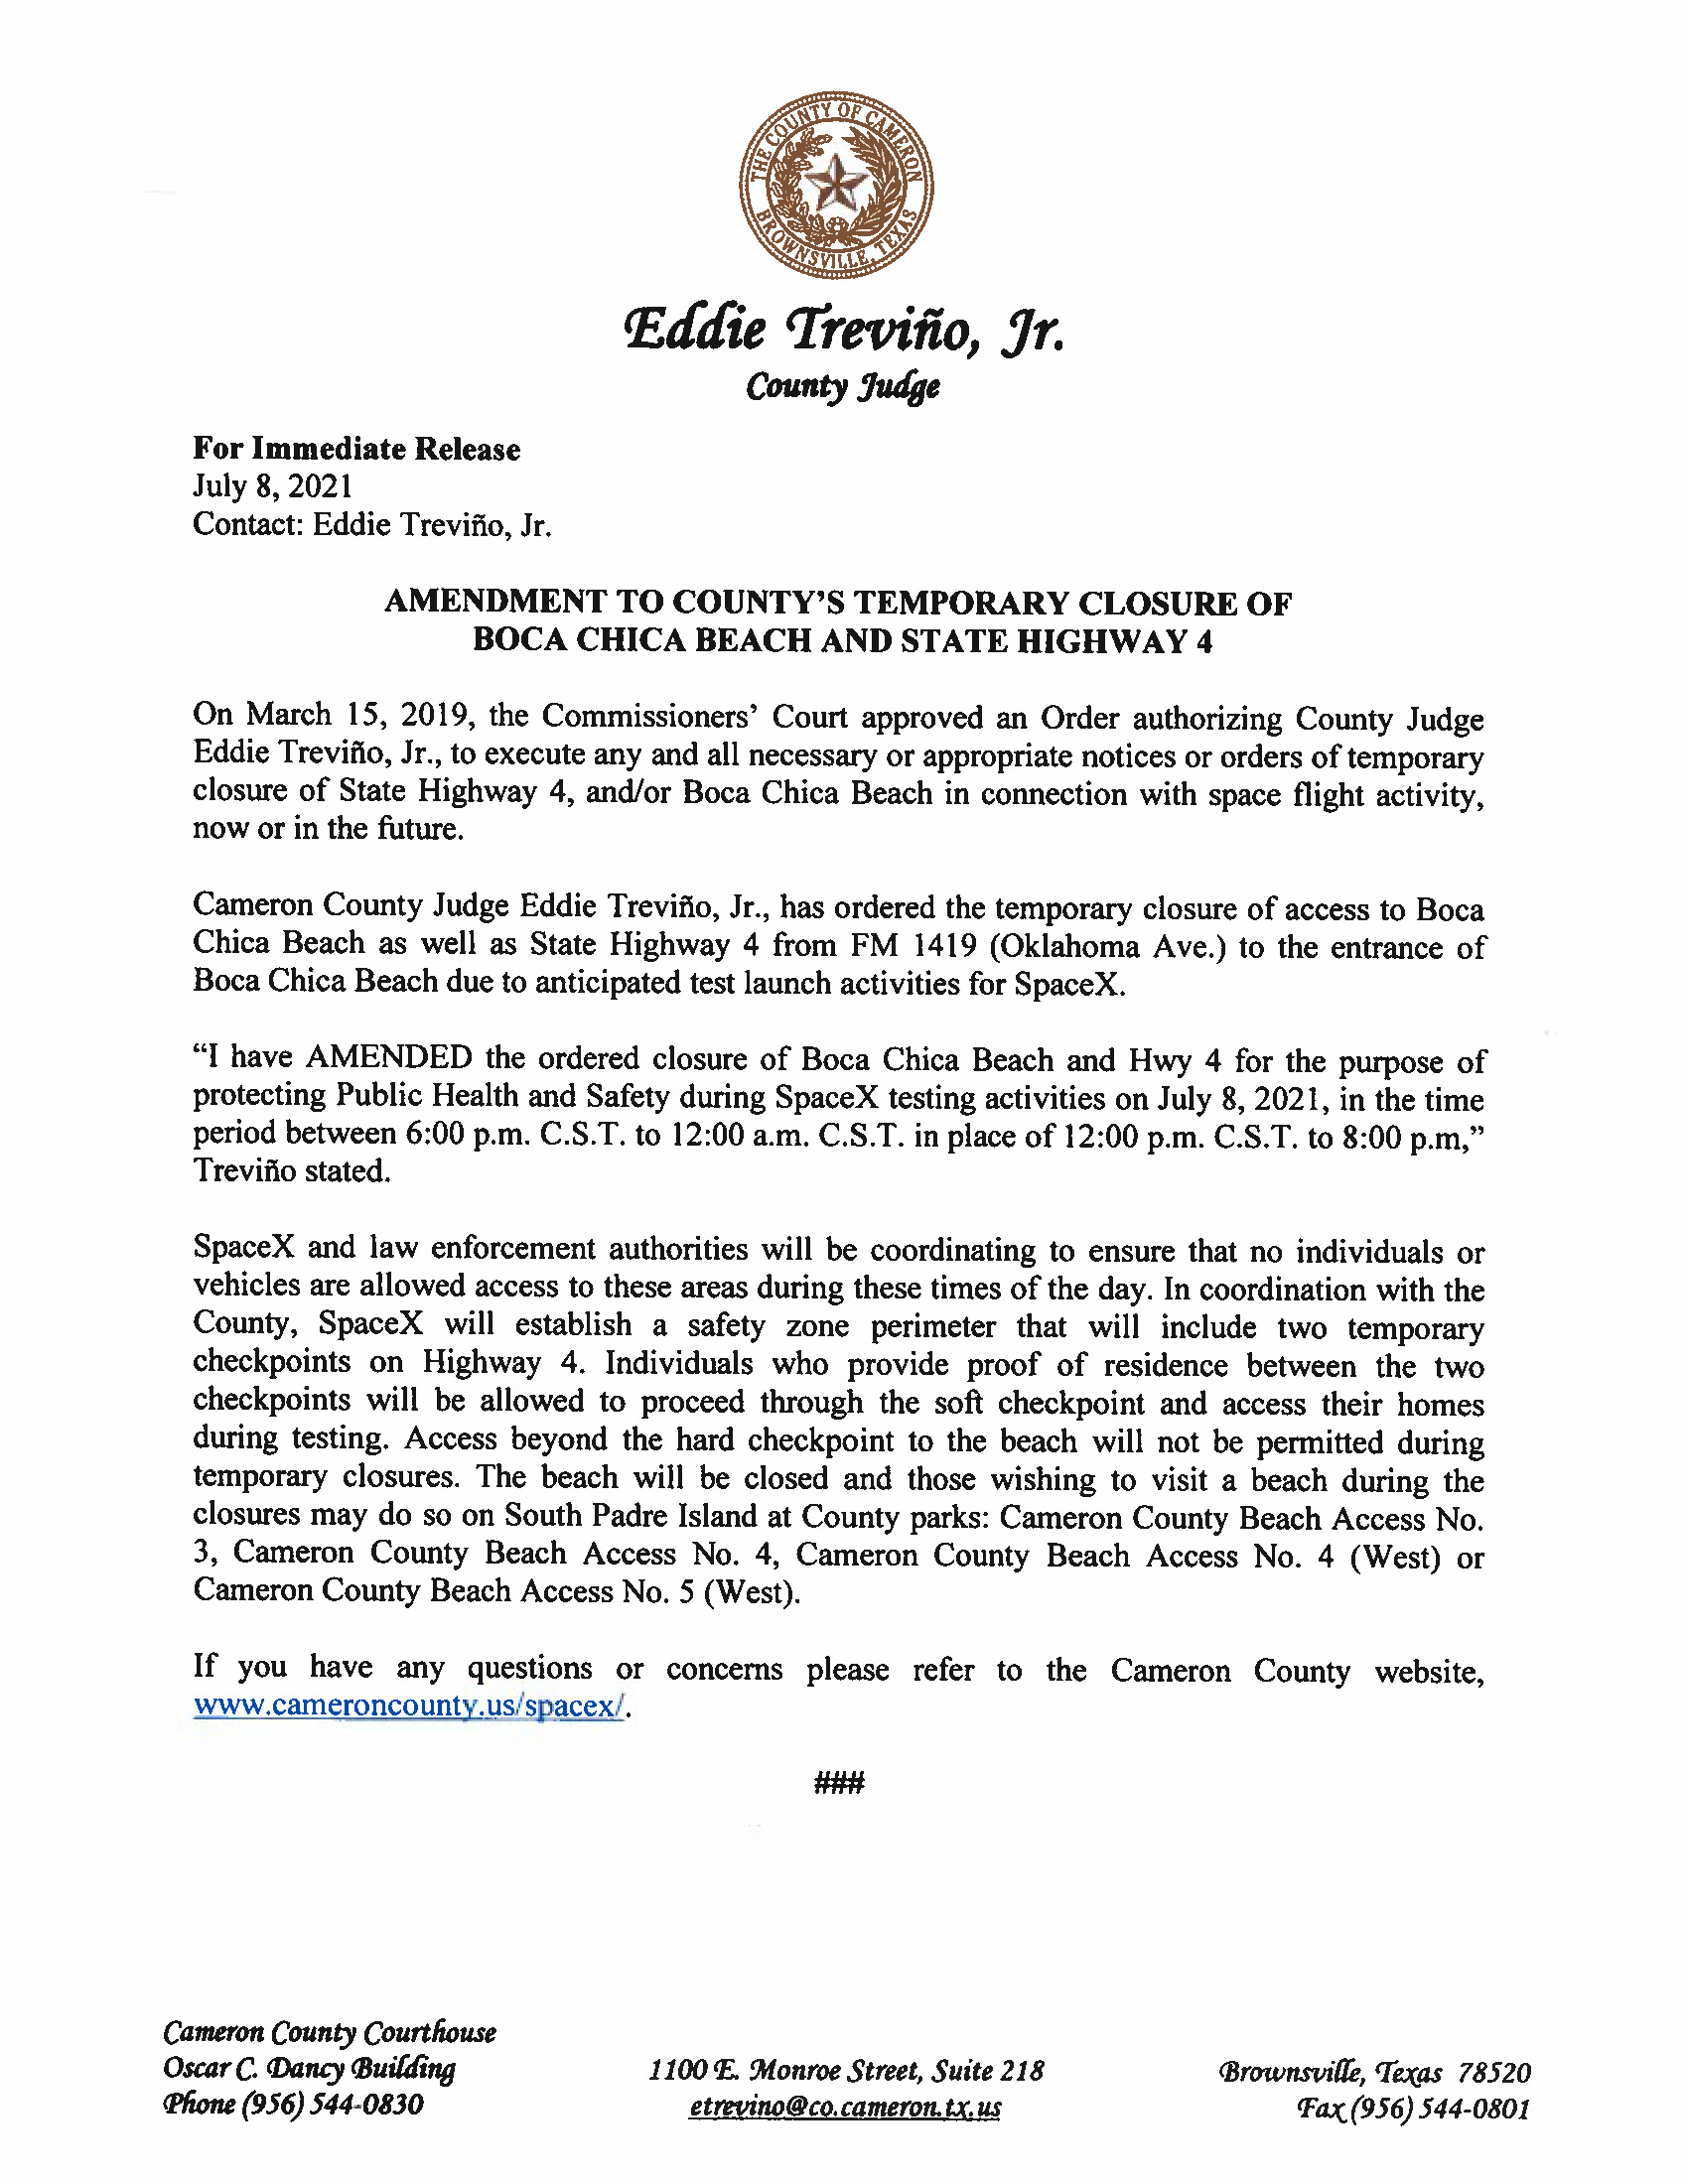 Press Release In English And Spanish.07.08.21 Page 1